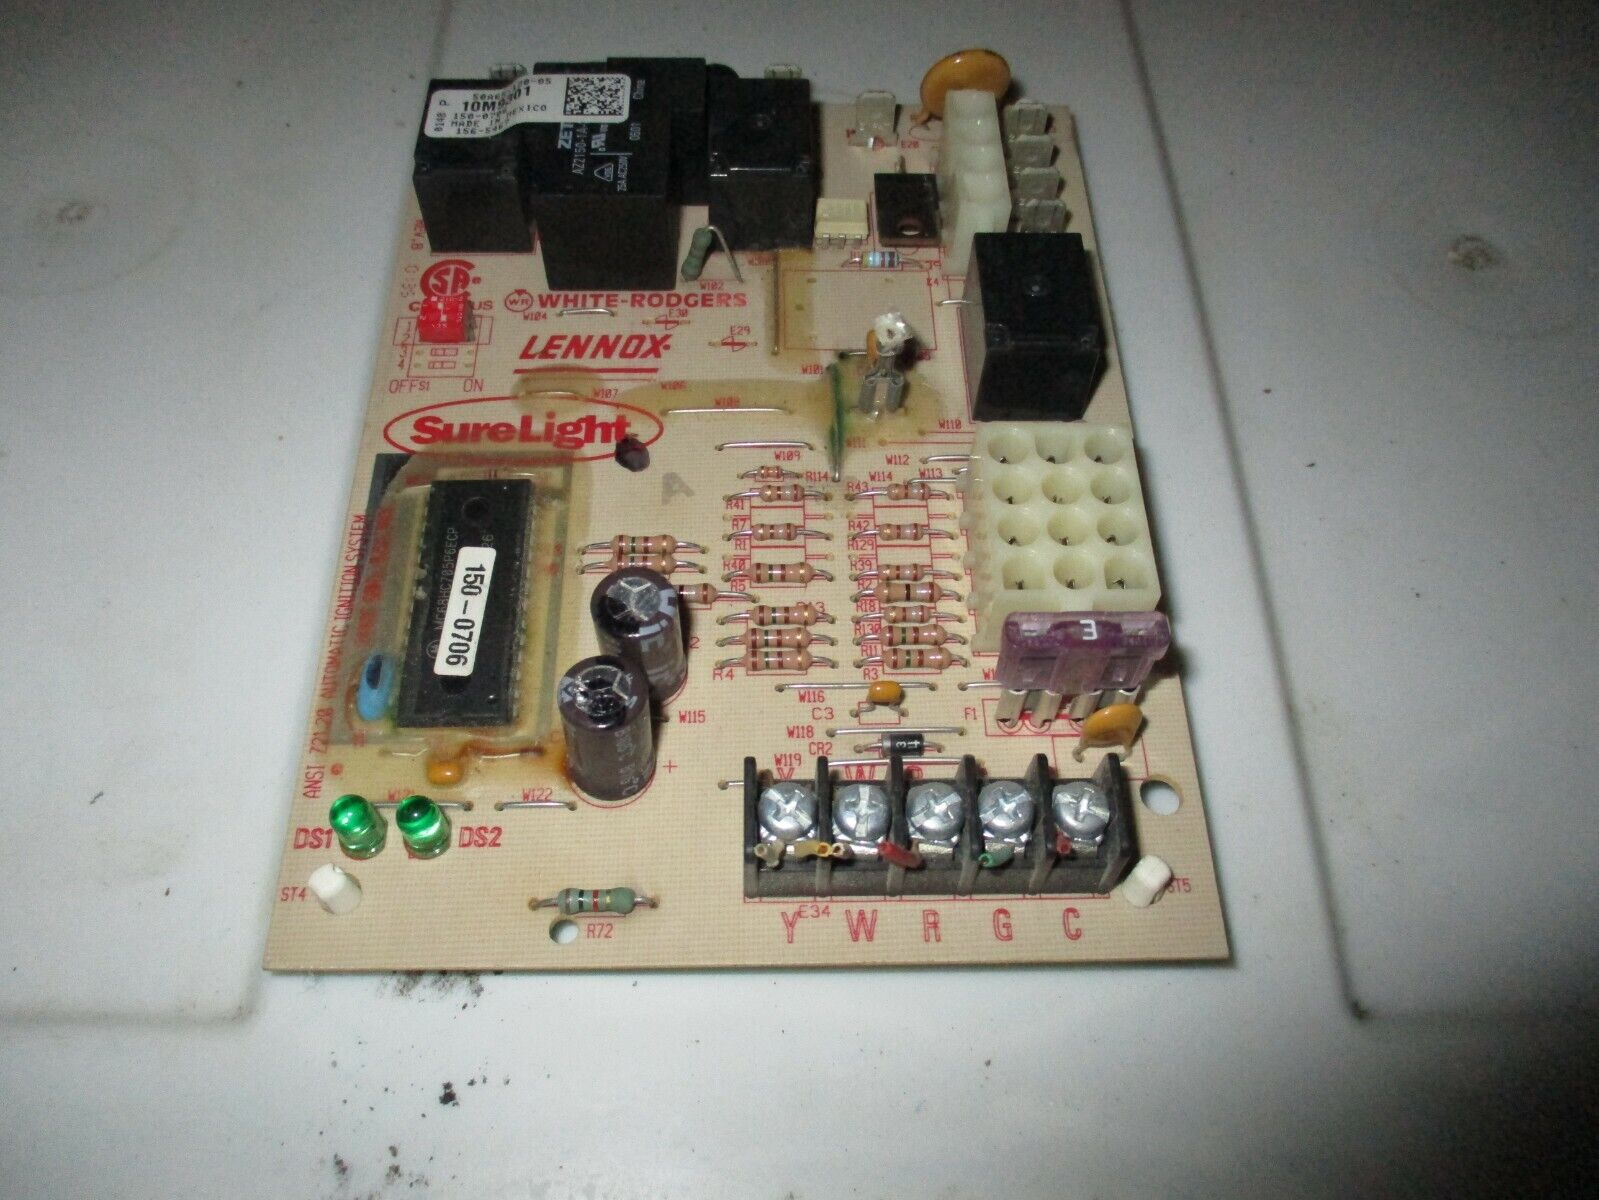 Lennox Furnace Control Board Wiring Diagram On White Rodgers Ignition